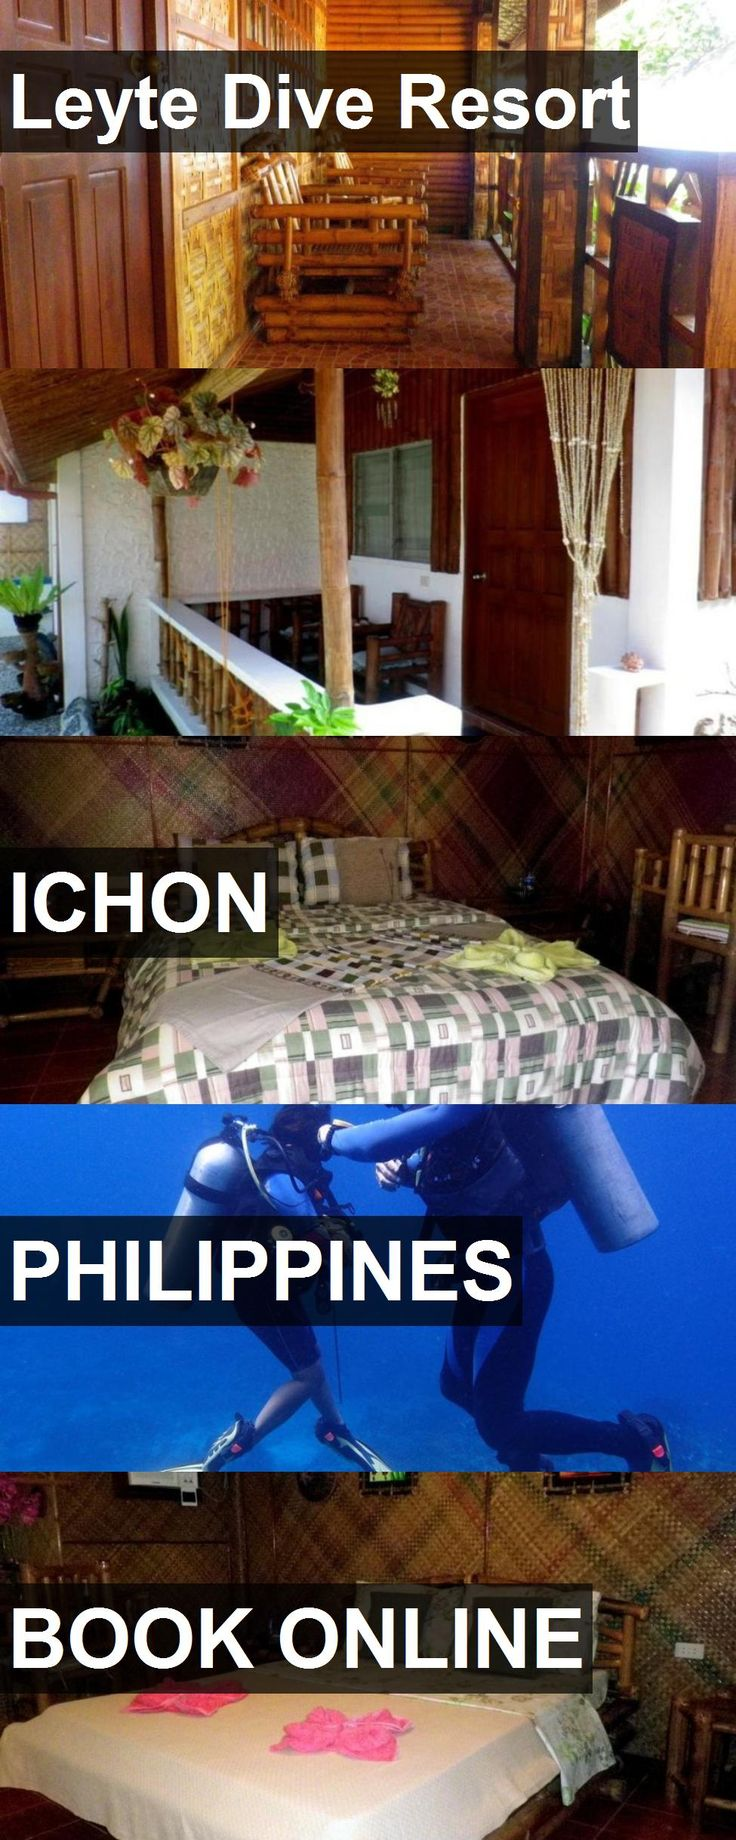 Hotel Leyte Dive Resort in Ichon, Philippines. For more information, photos, reviews and best prices please follow the link. #Philippines #Ichon #LeyteDiveResort #hotel #travel #vacation